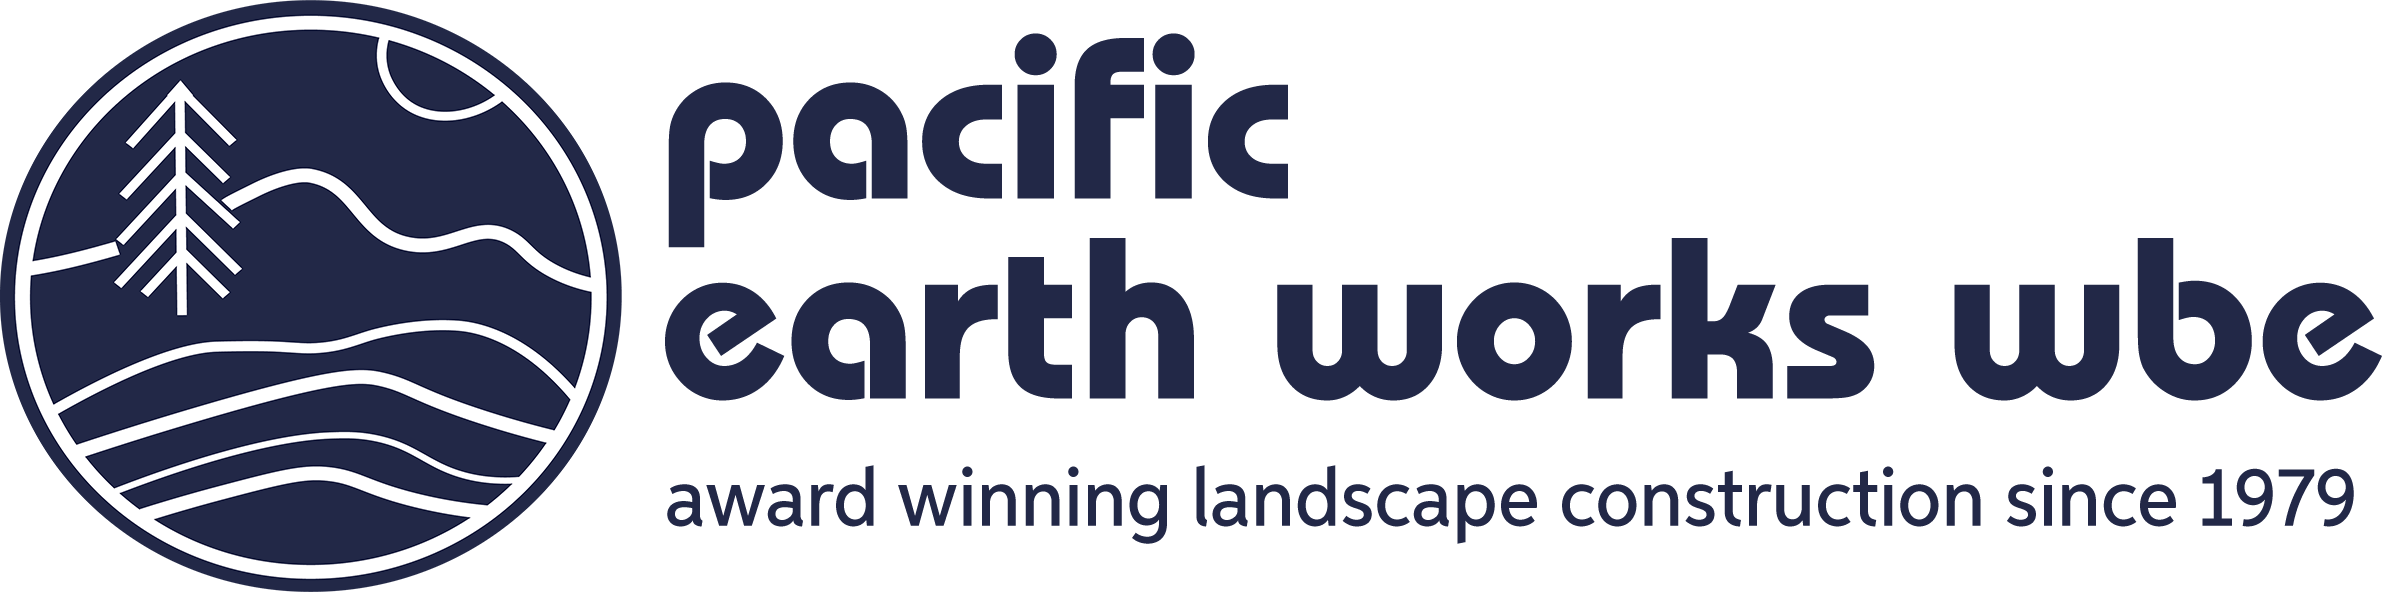 Pacific Earth Works